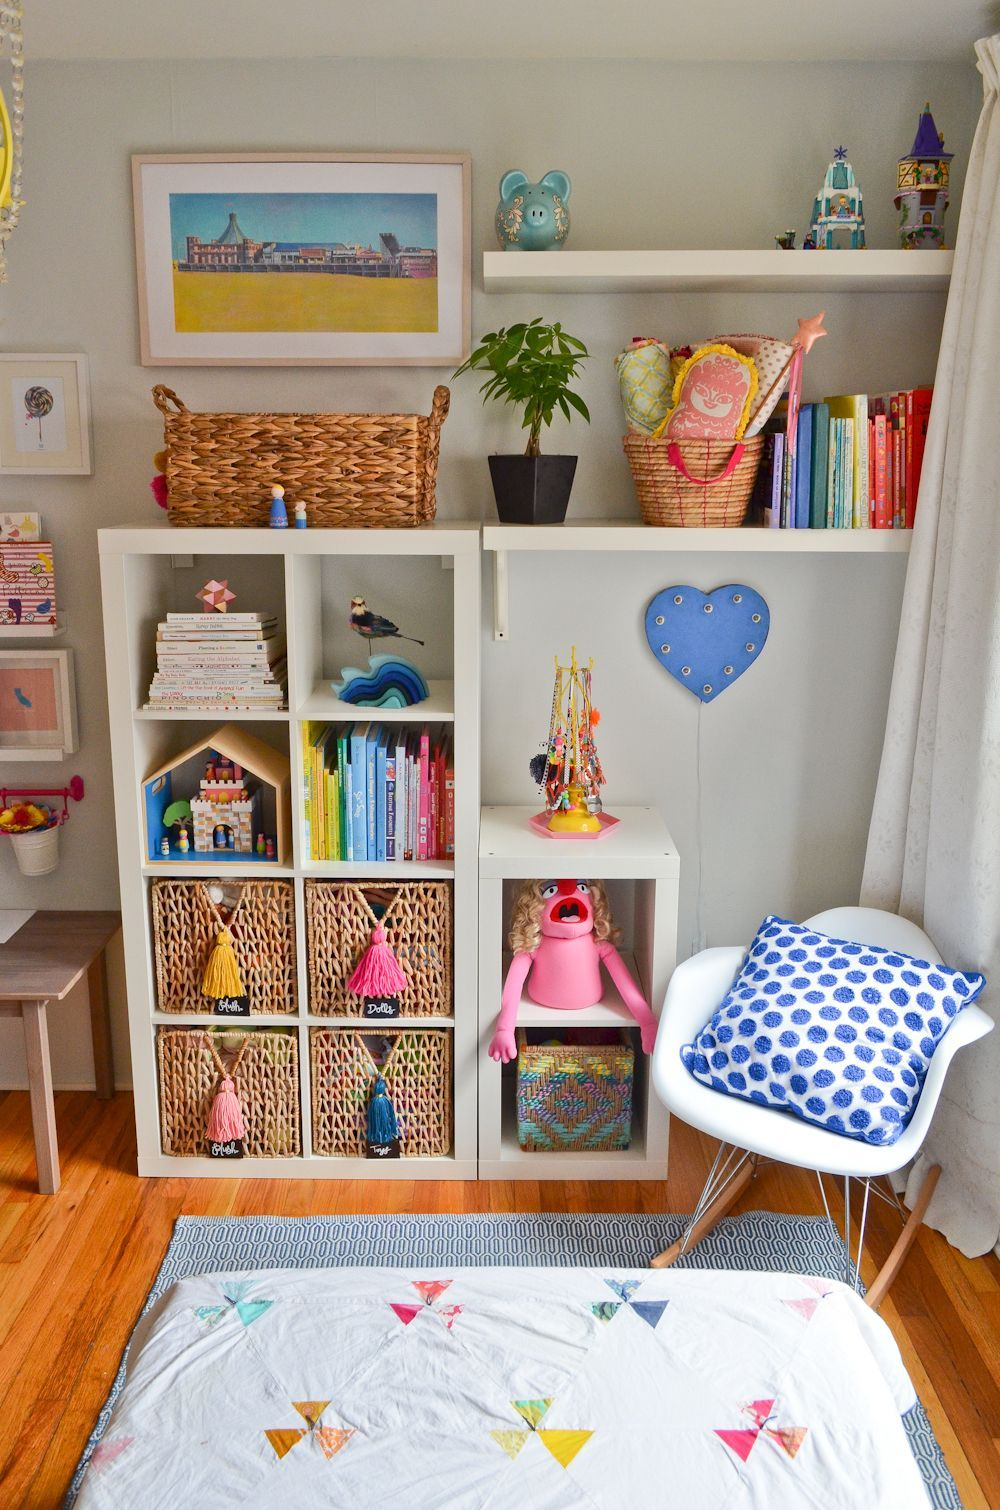 30 Best Playroom Ideas For Small And Large Spaces Kids Bedroom Organization Girl Room Boy Room